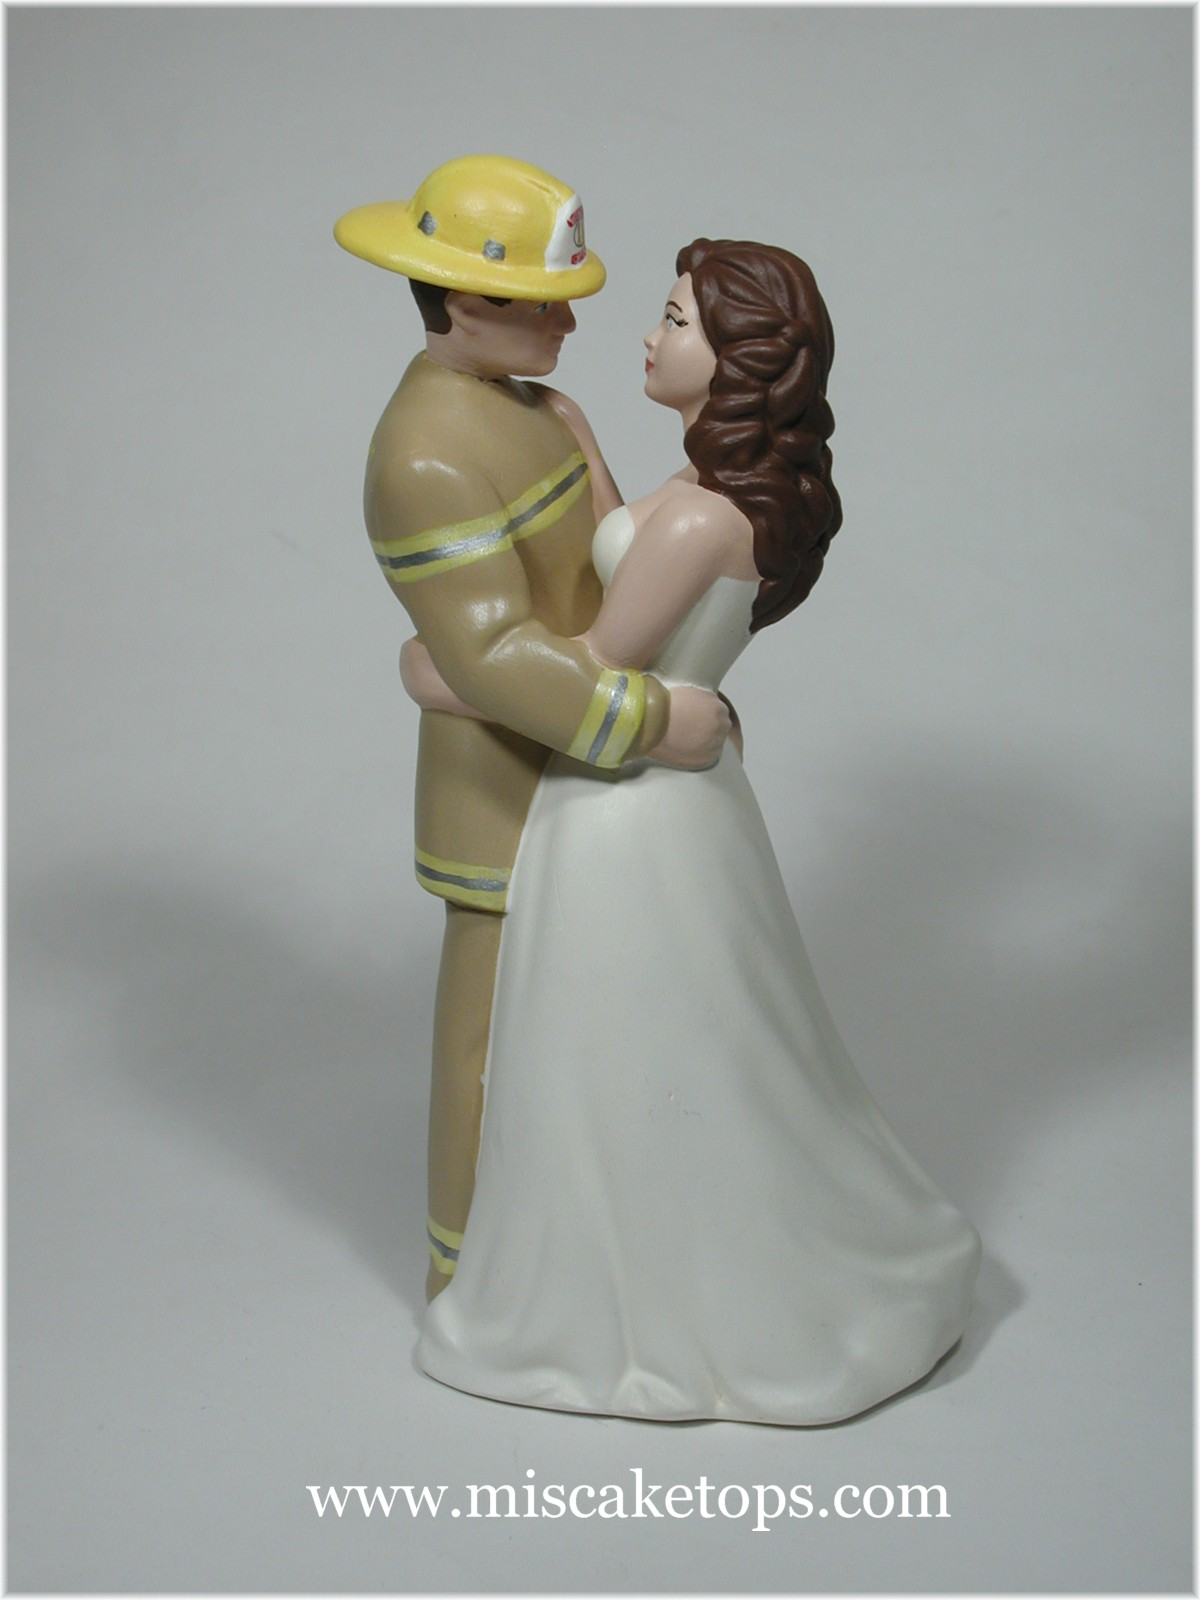 Dance With Me Firefighter Groom Cake Topper